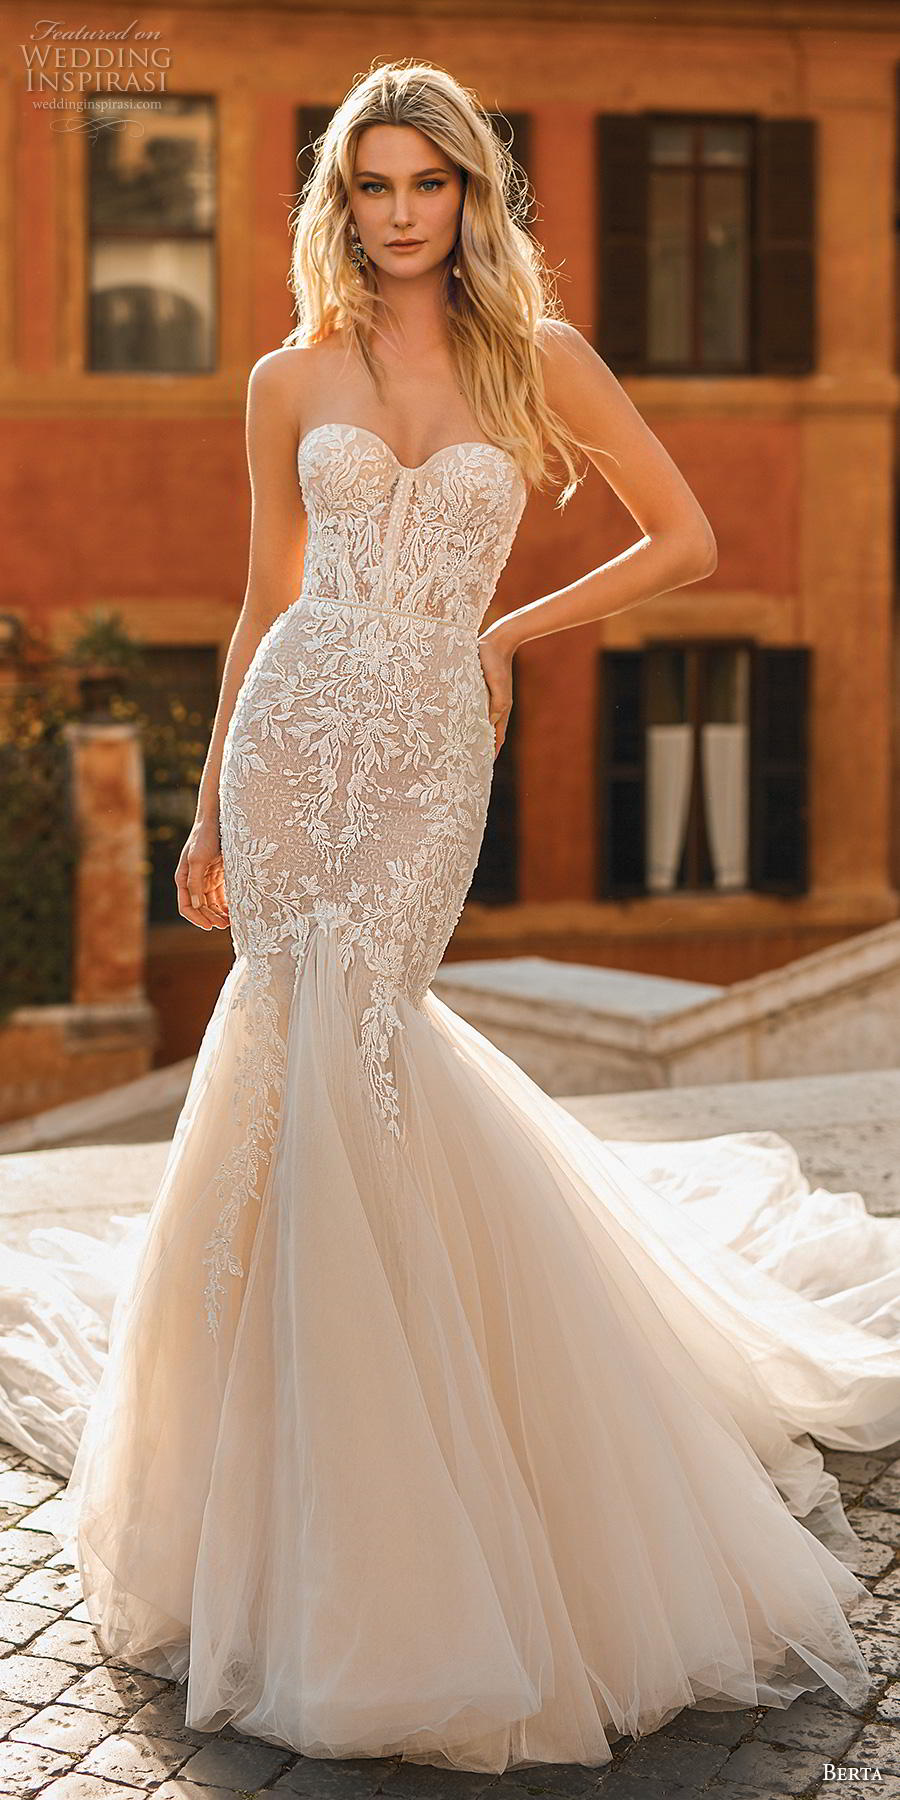 berta 2020 privee bridal strapless sweetheart neckline heavily embellished bodice romantic mermaid wedding dress mid back chapel train (4) lv